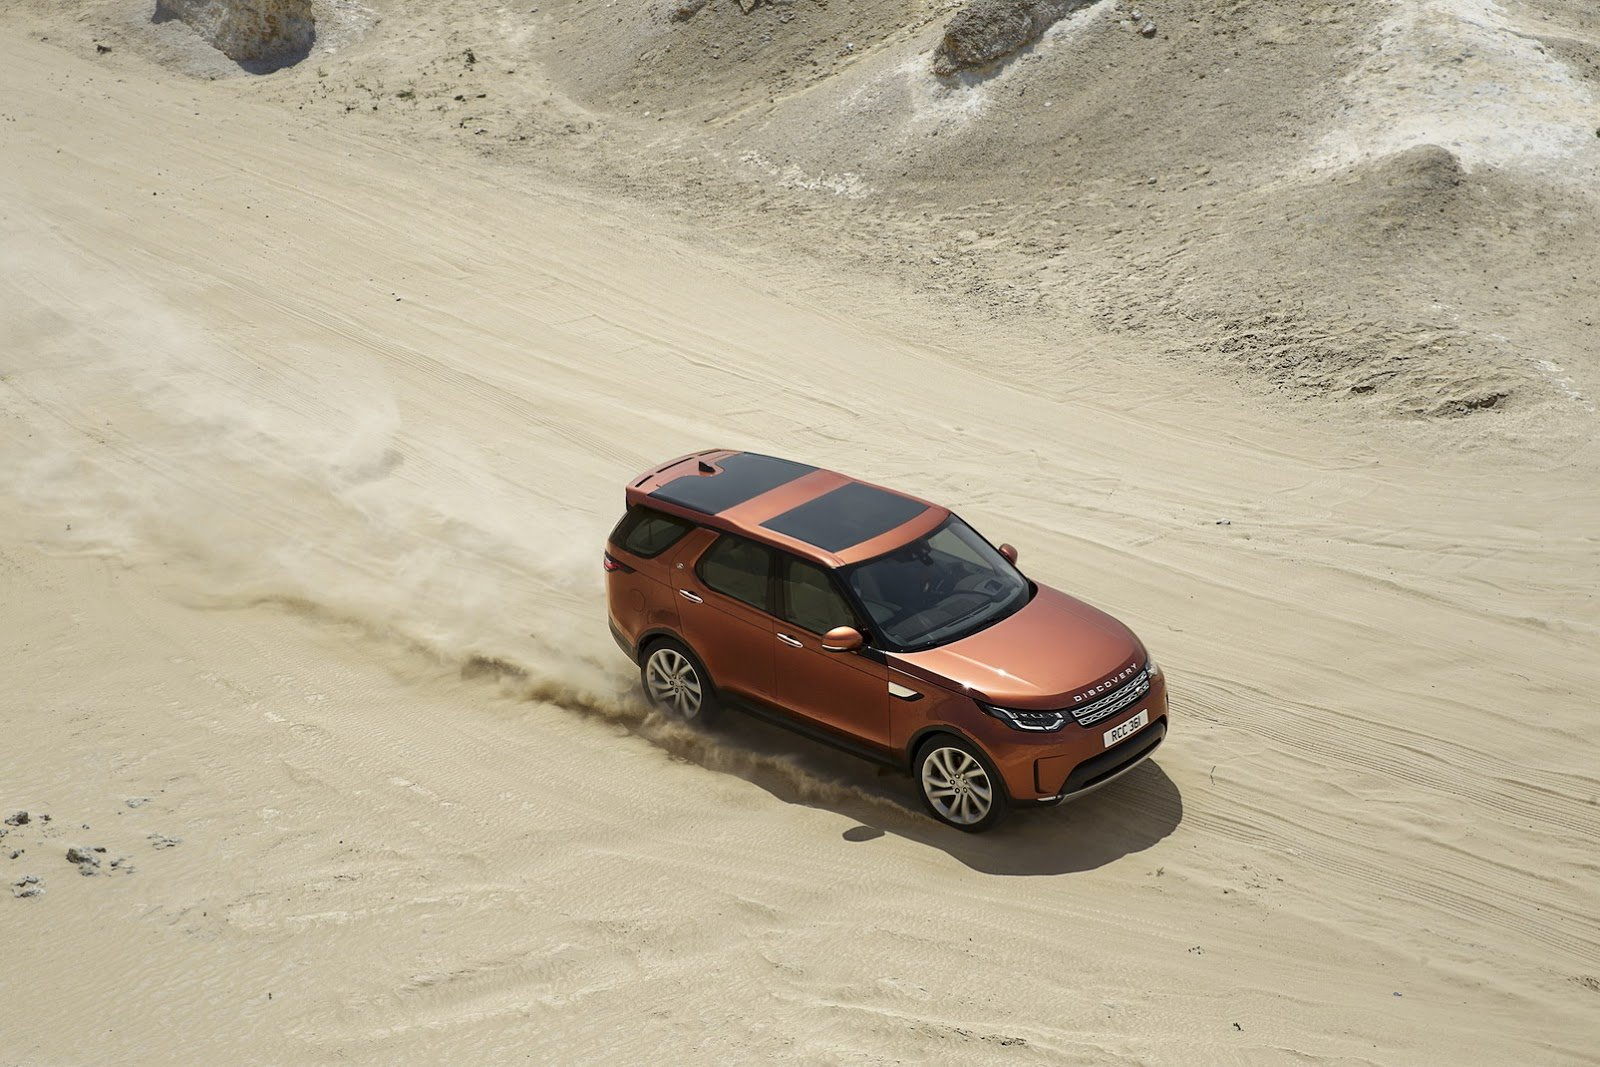 land rover north america inc marketing case study Land rover north america inc video case solution, contains the following tv advertising: 1) introductory spots range rover, 2) introductory spots defender, 3) round one spots introductory discovery, 4) rou.